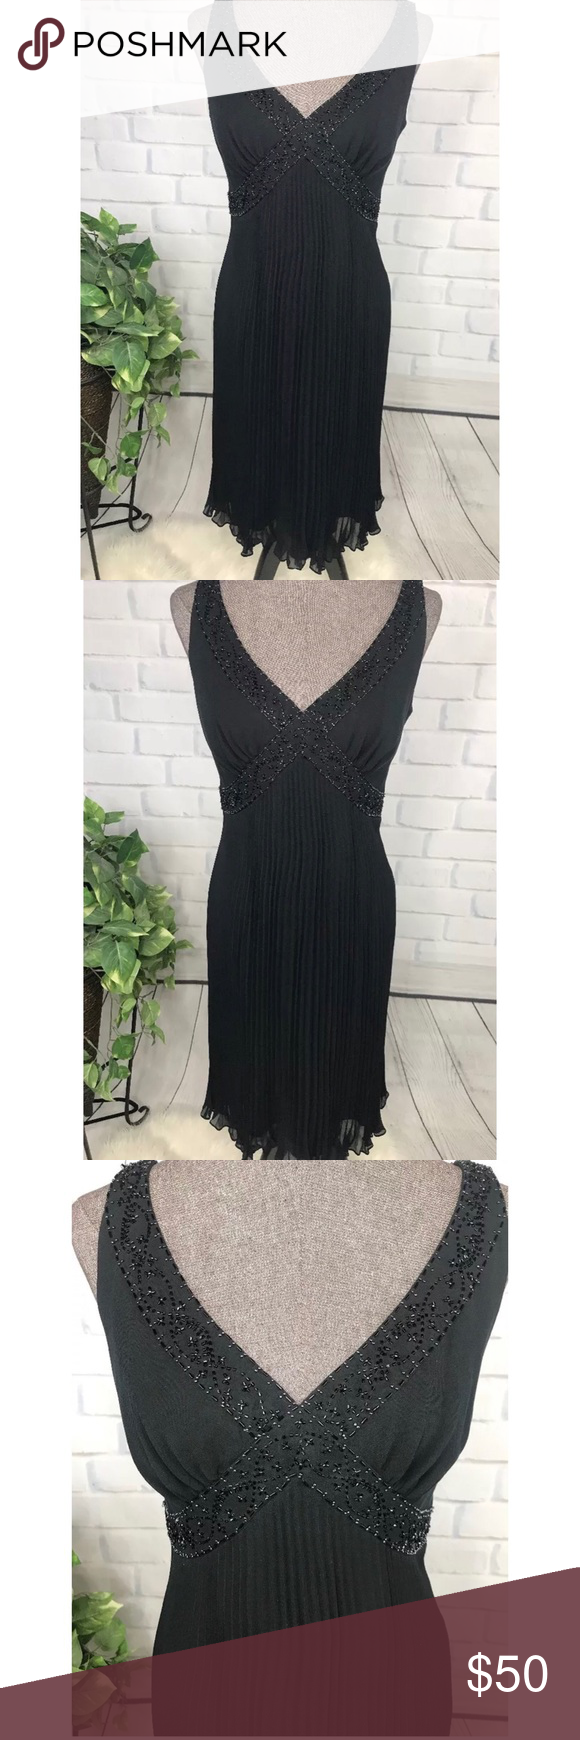 """Nee Jones New York Formal Cocktail Dress size 10 Perfect """"Little Black Dress"""" Nee with Tags Jones … (With images)"""